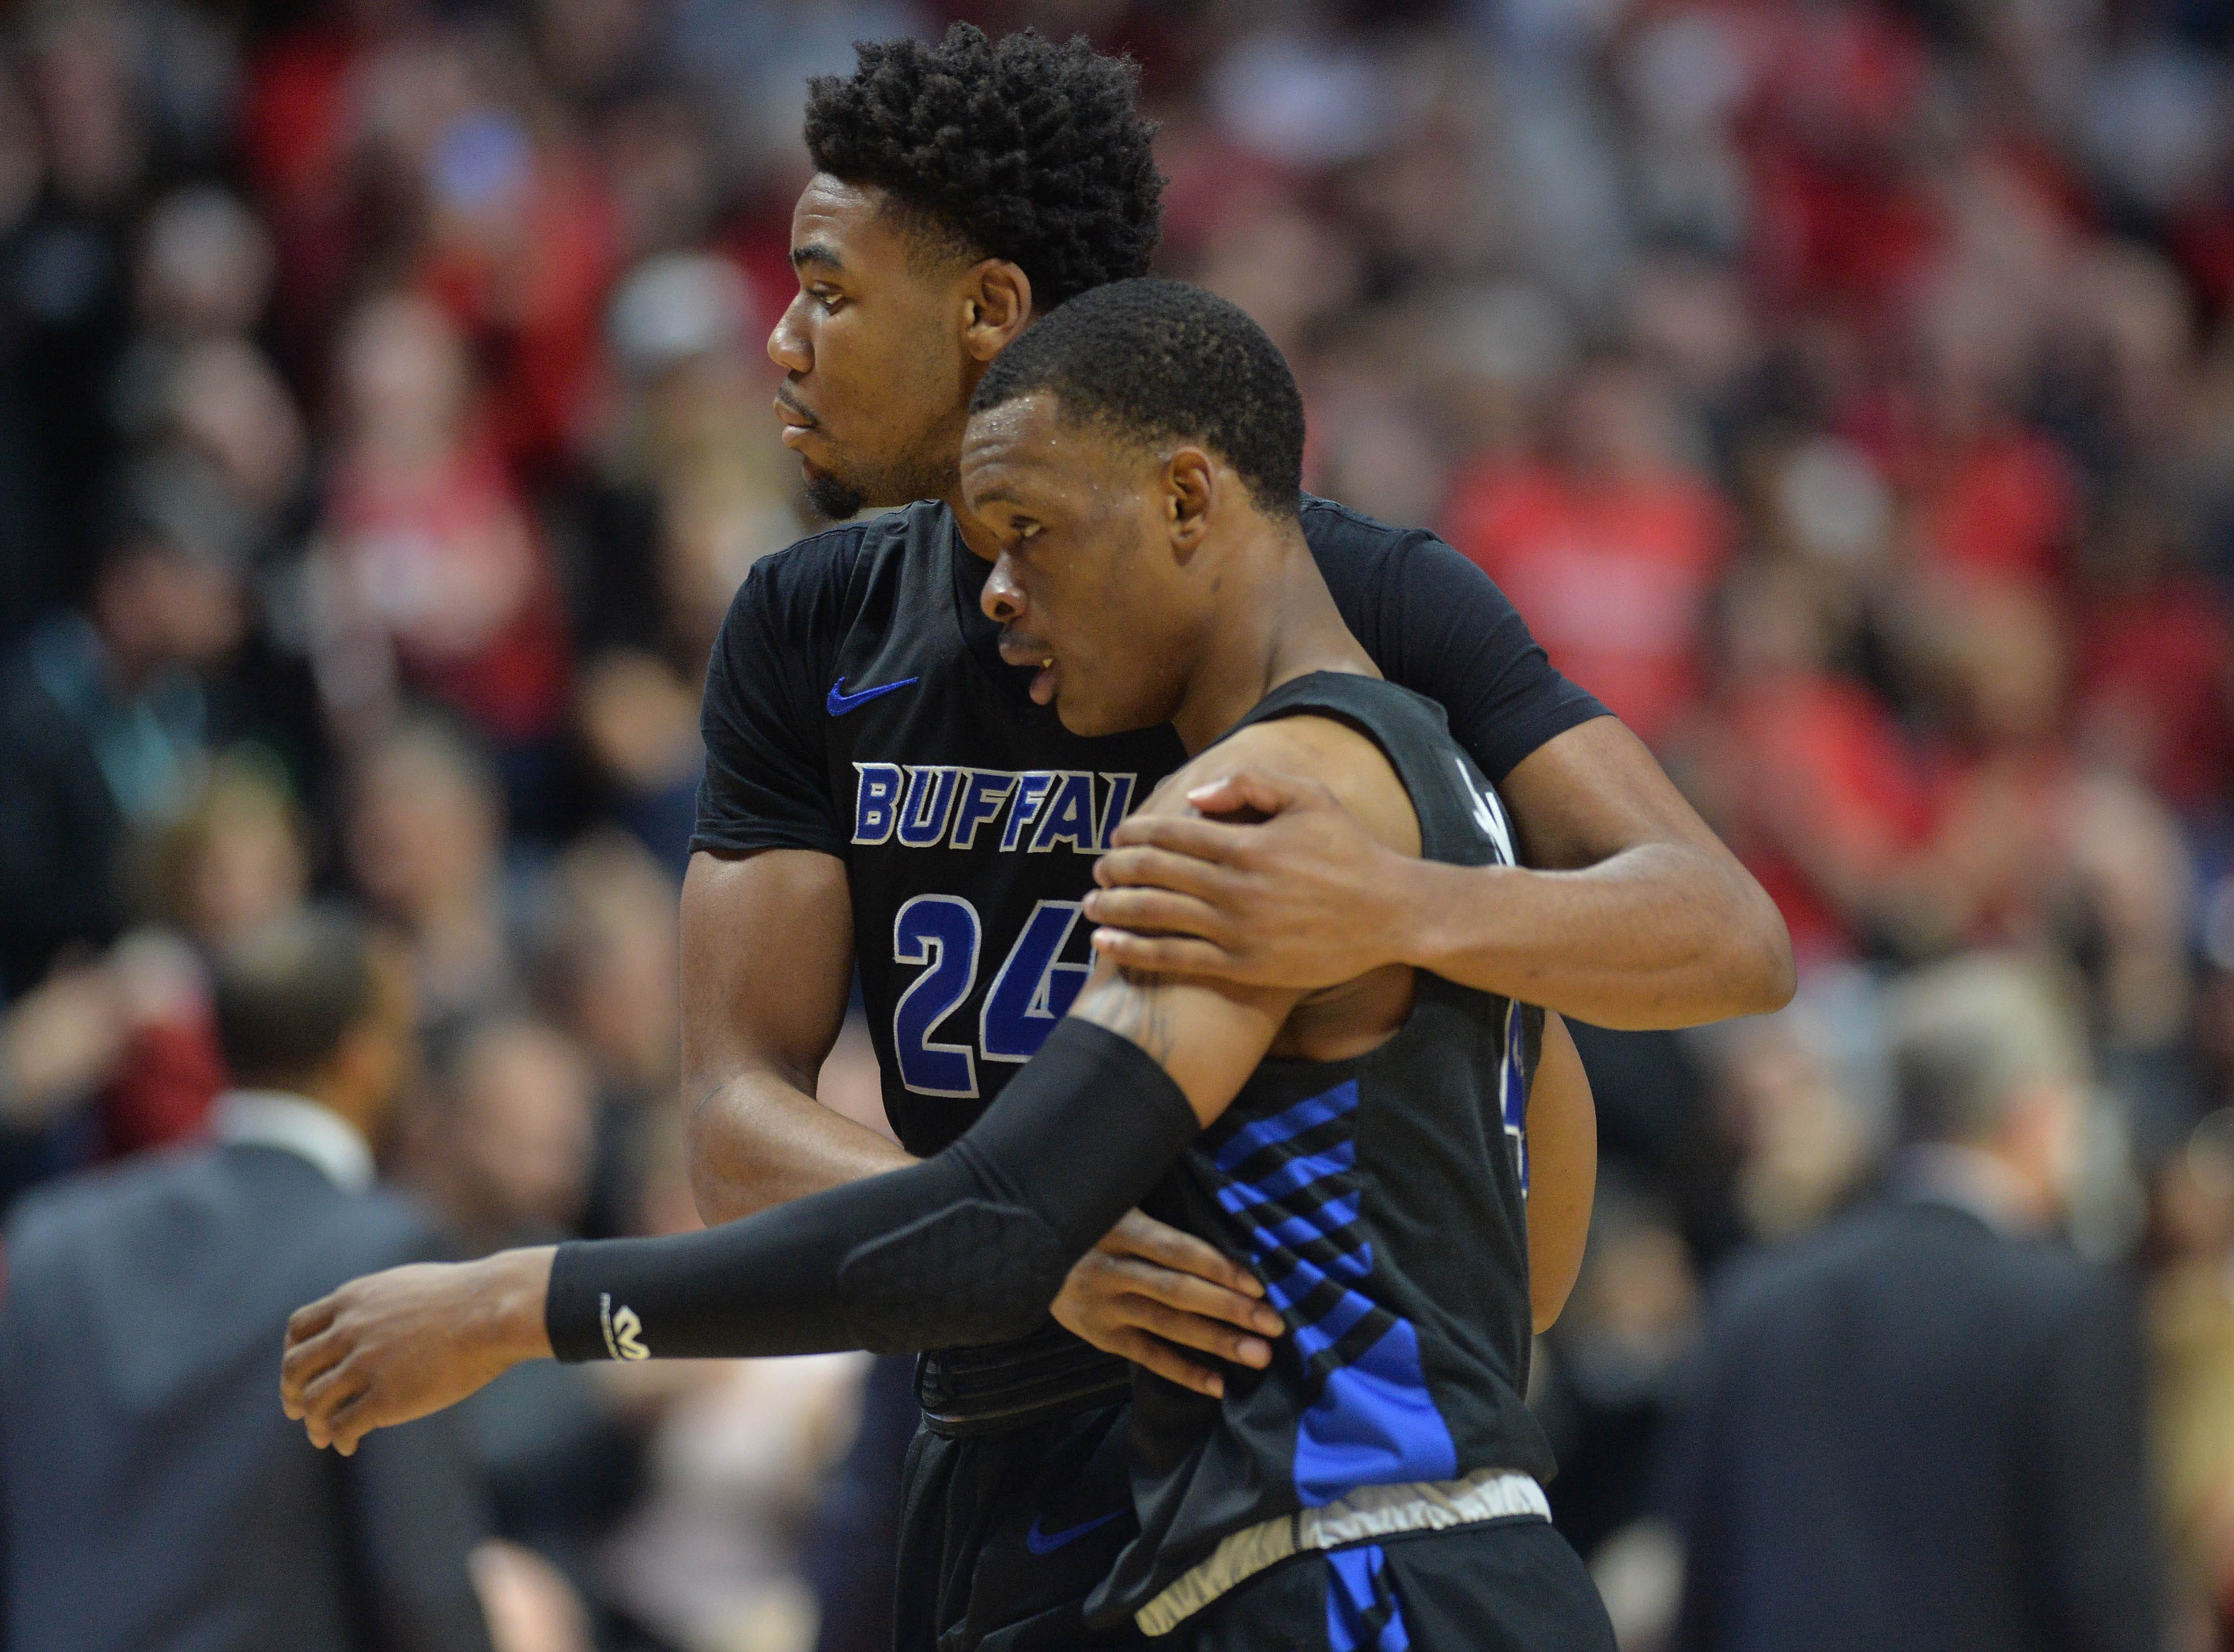 Round of 32: No. 6 Buffalo loses to No. 3 Texas Tech, 78-58.